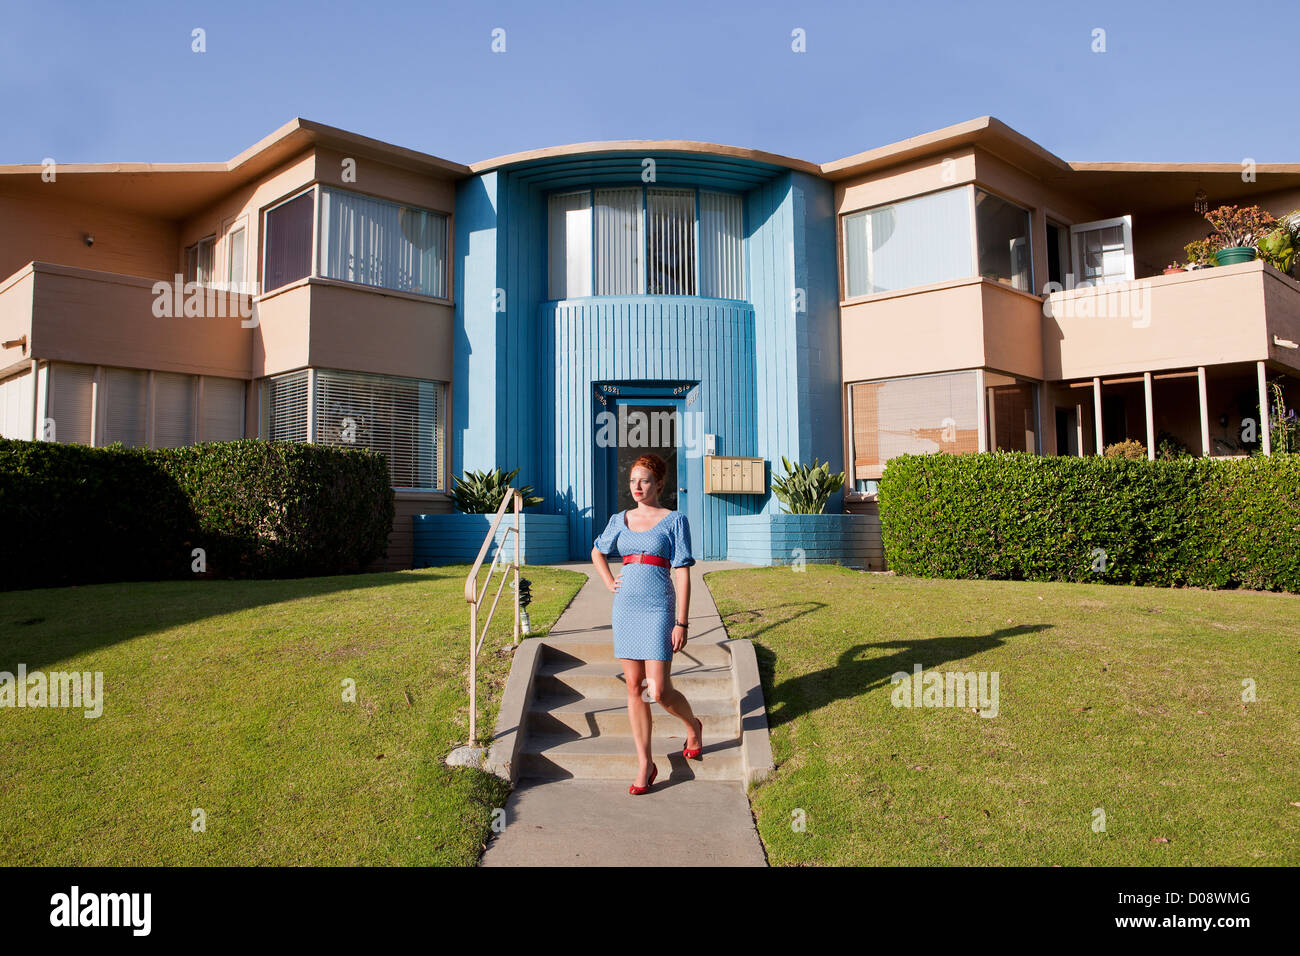 Girl In Front Of Retro Apartment Building